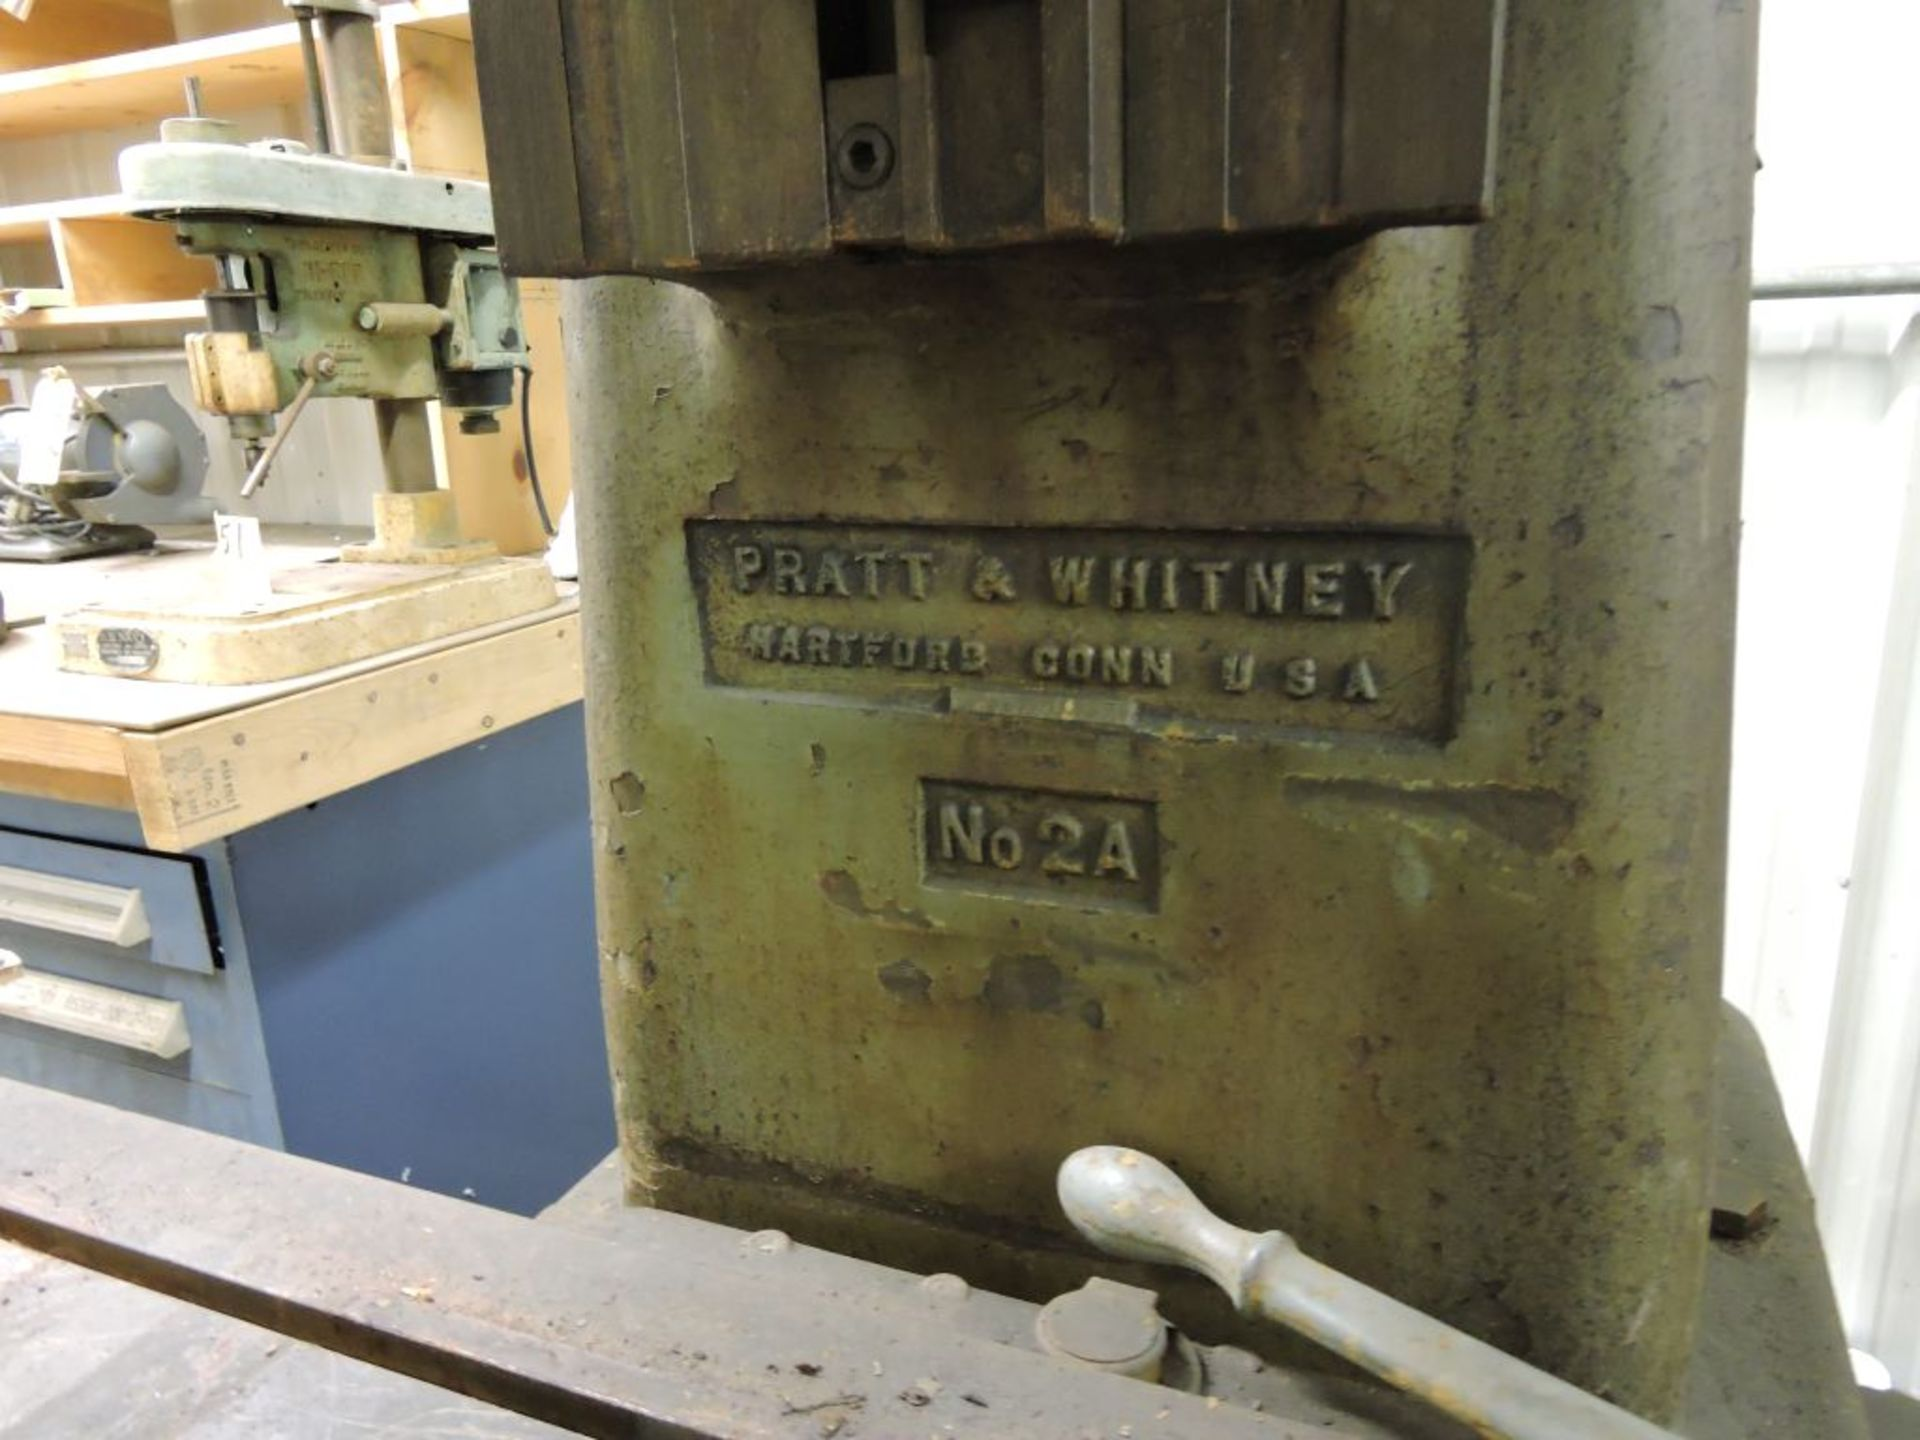 "Pratt Whitney mill No. 2A, jig borer M-1620, sn 1097, 44"" x 22"" bed, (parts machine). - Image 4 of 5"